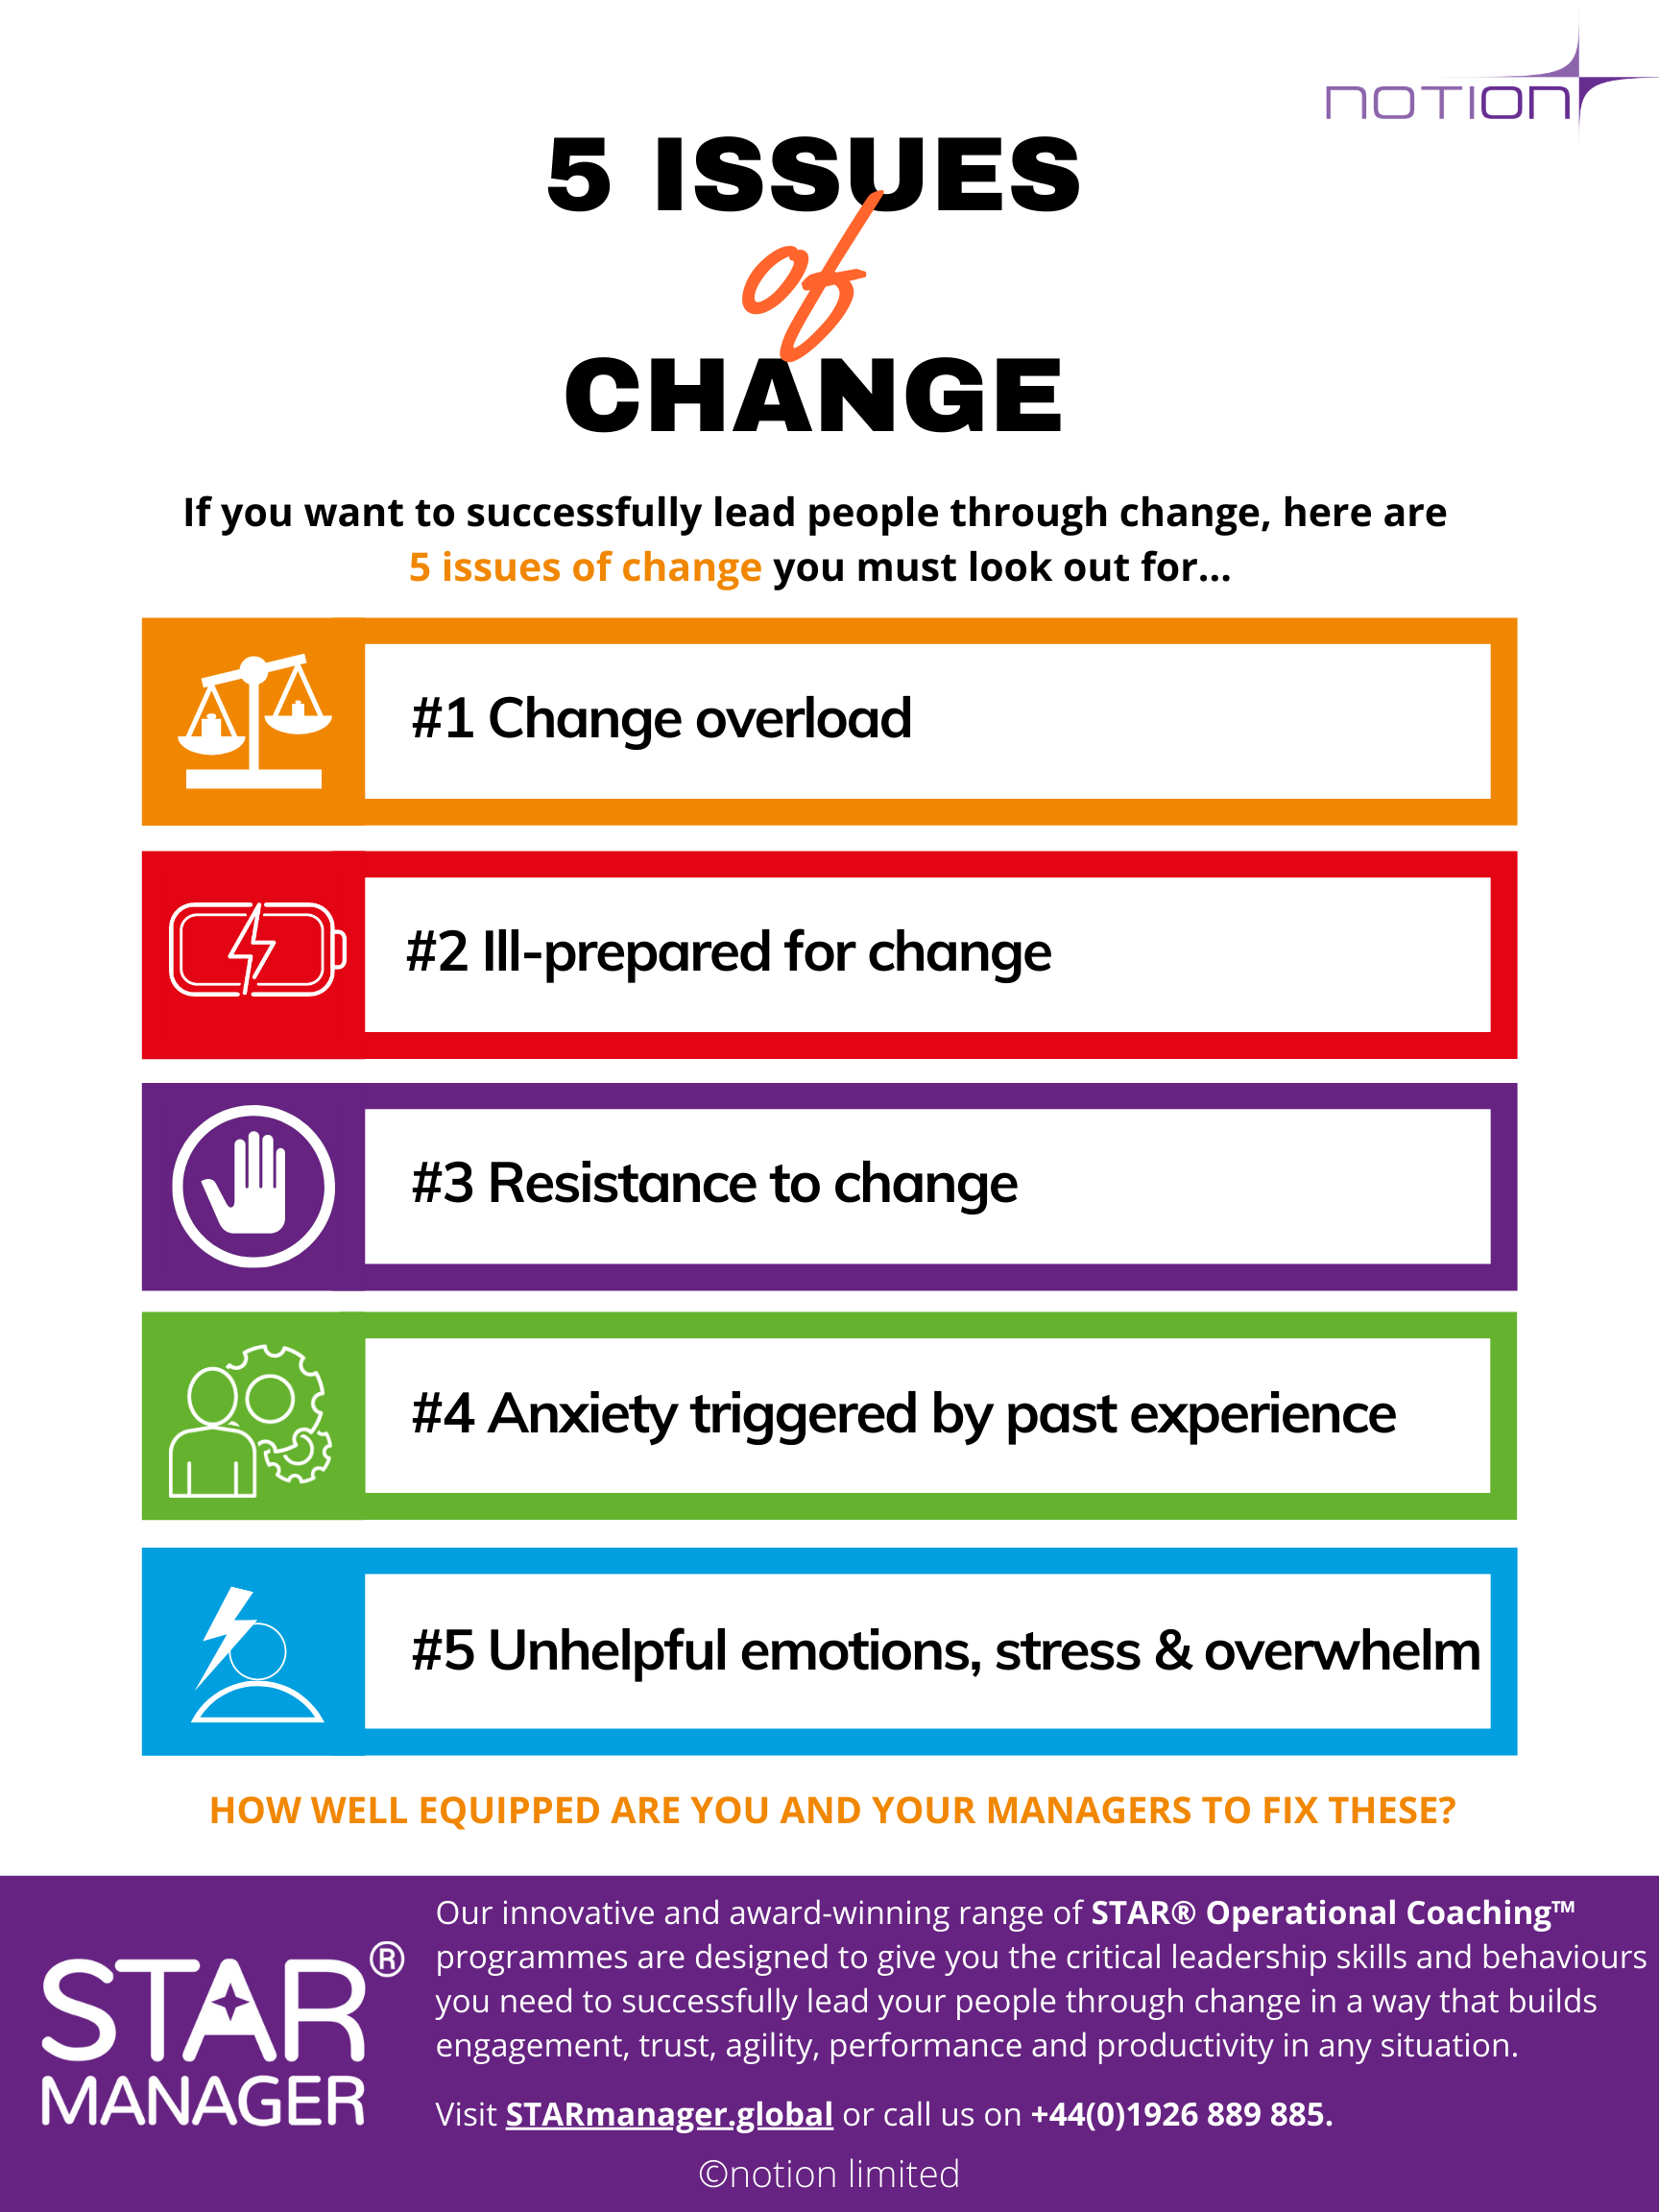 5 Symptoms of Change